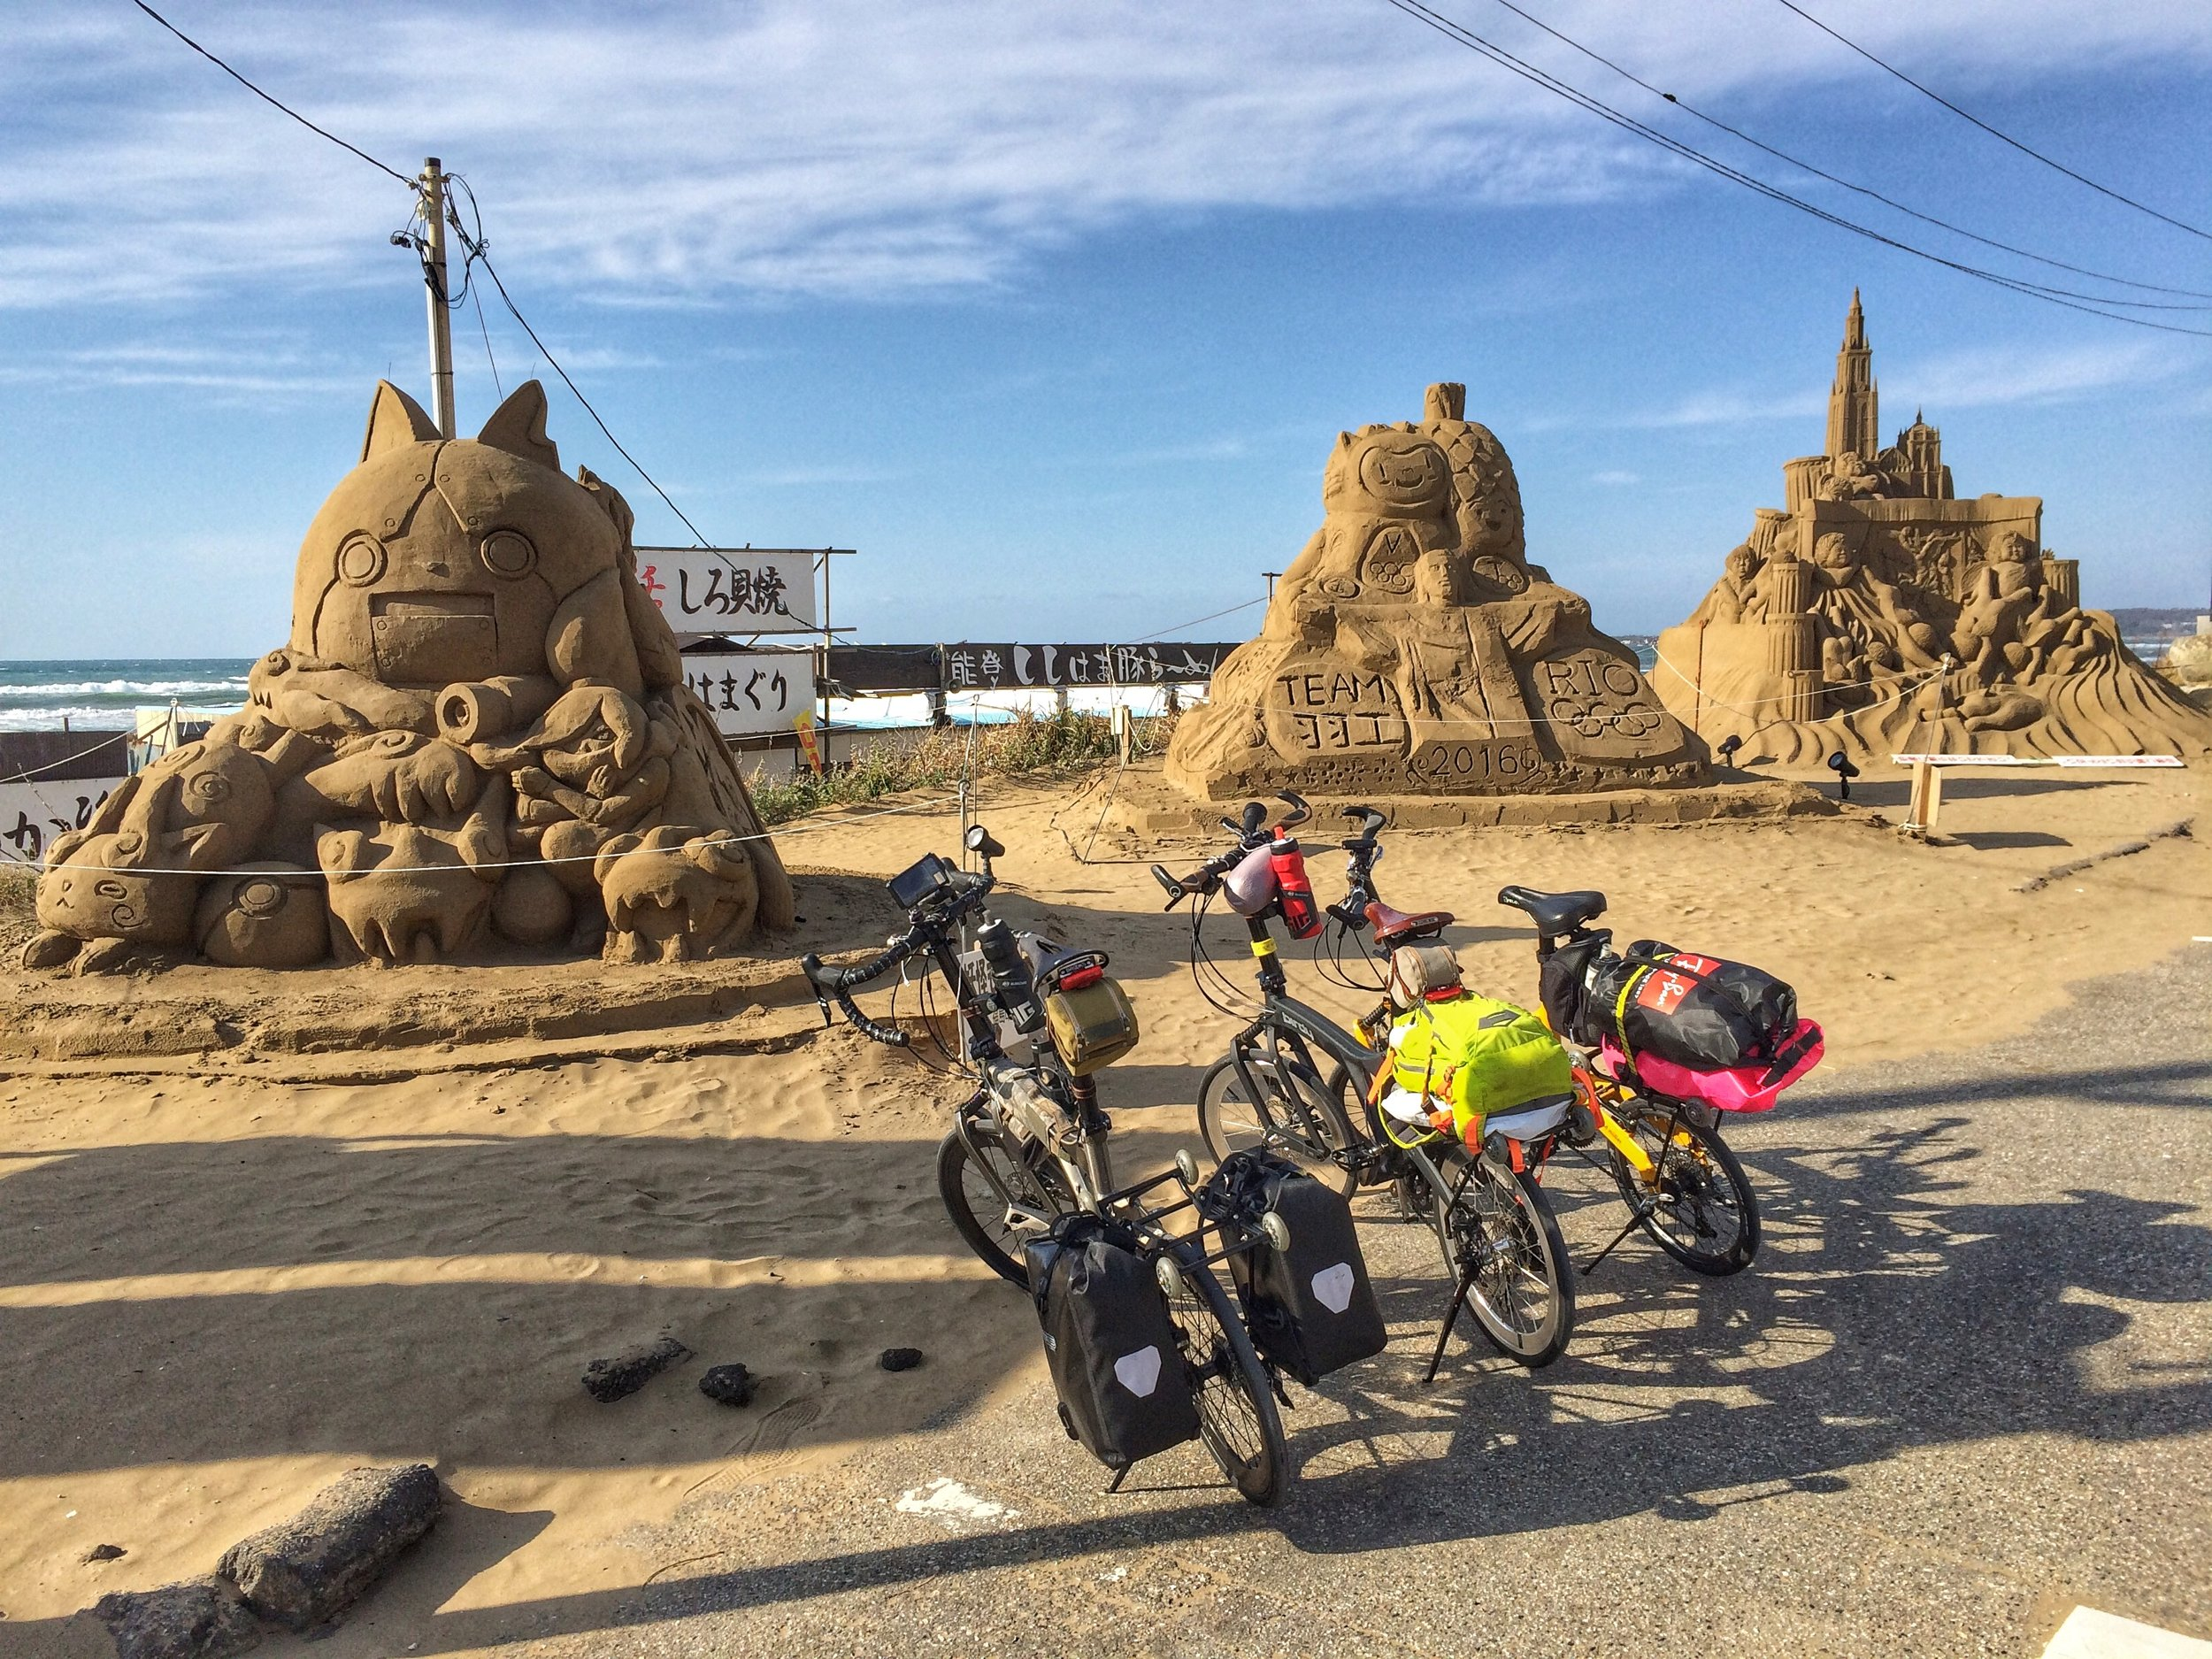 Making a stop for food and also admiring the sand sculptures!